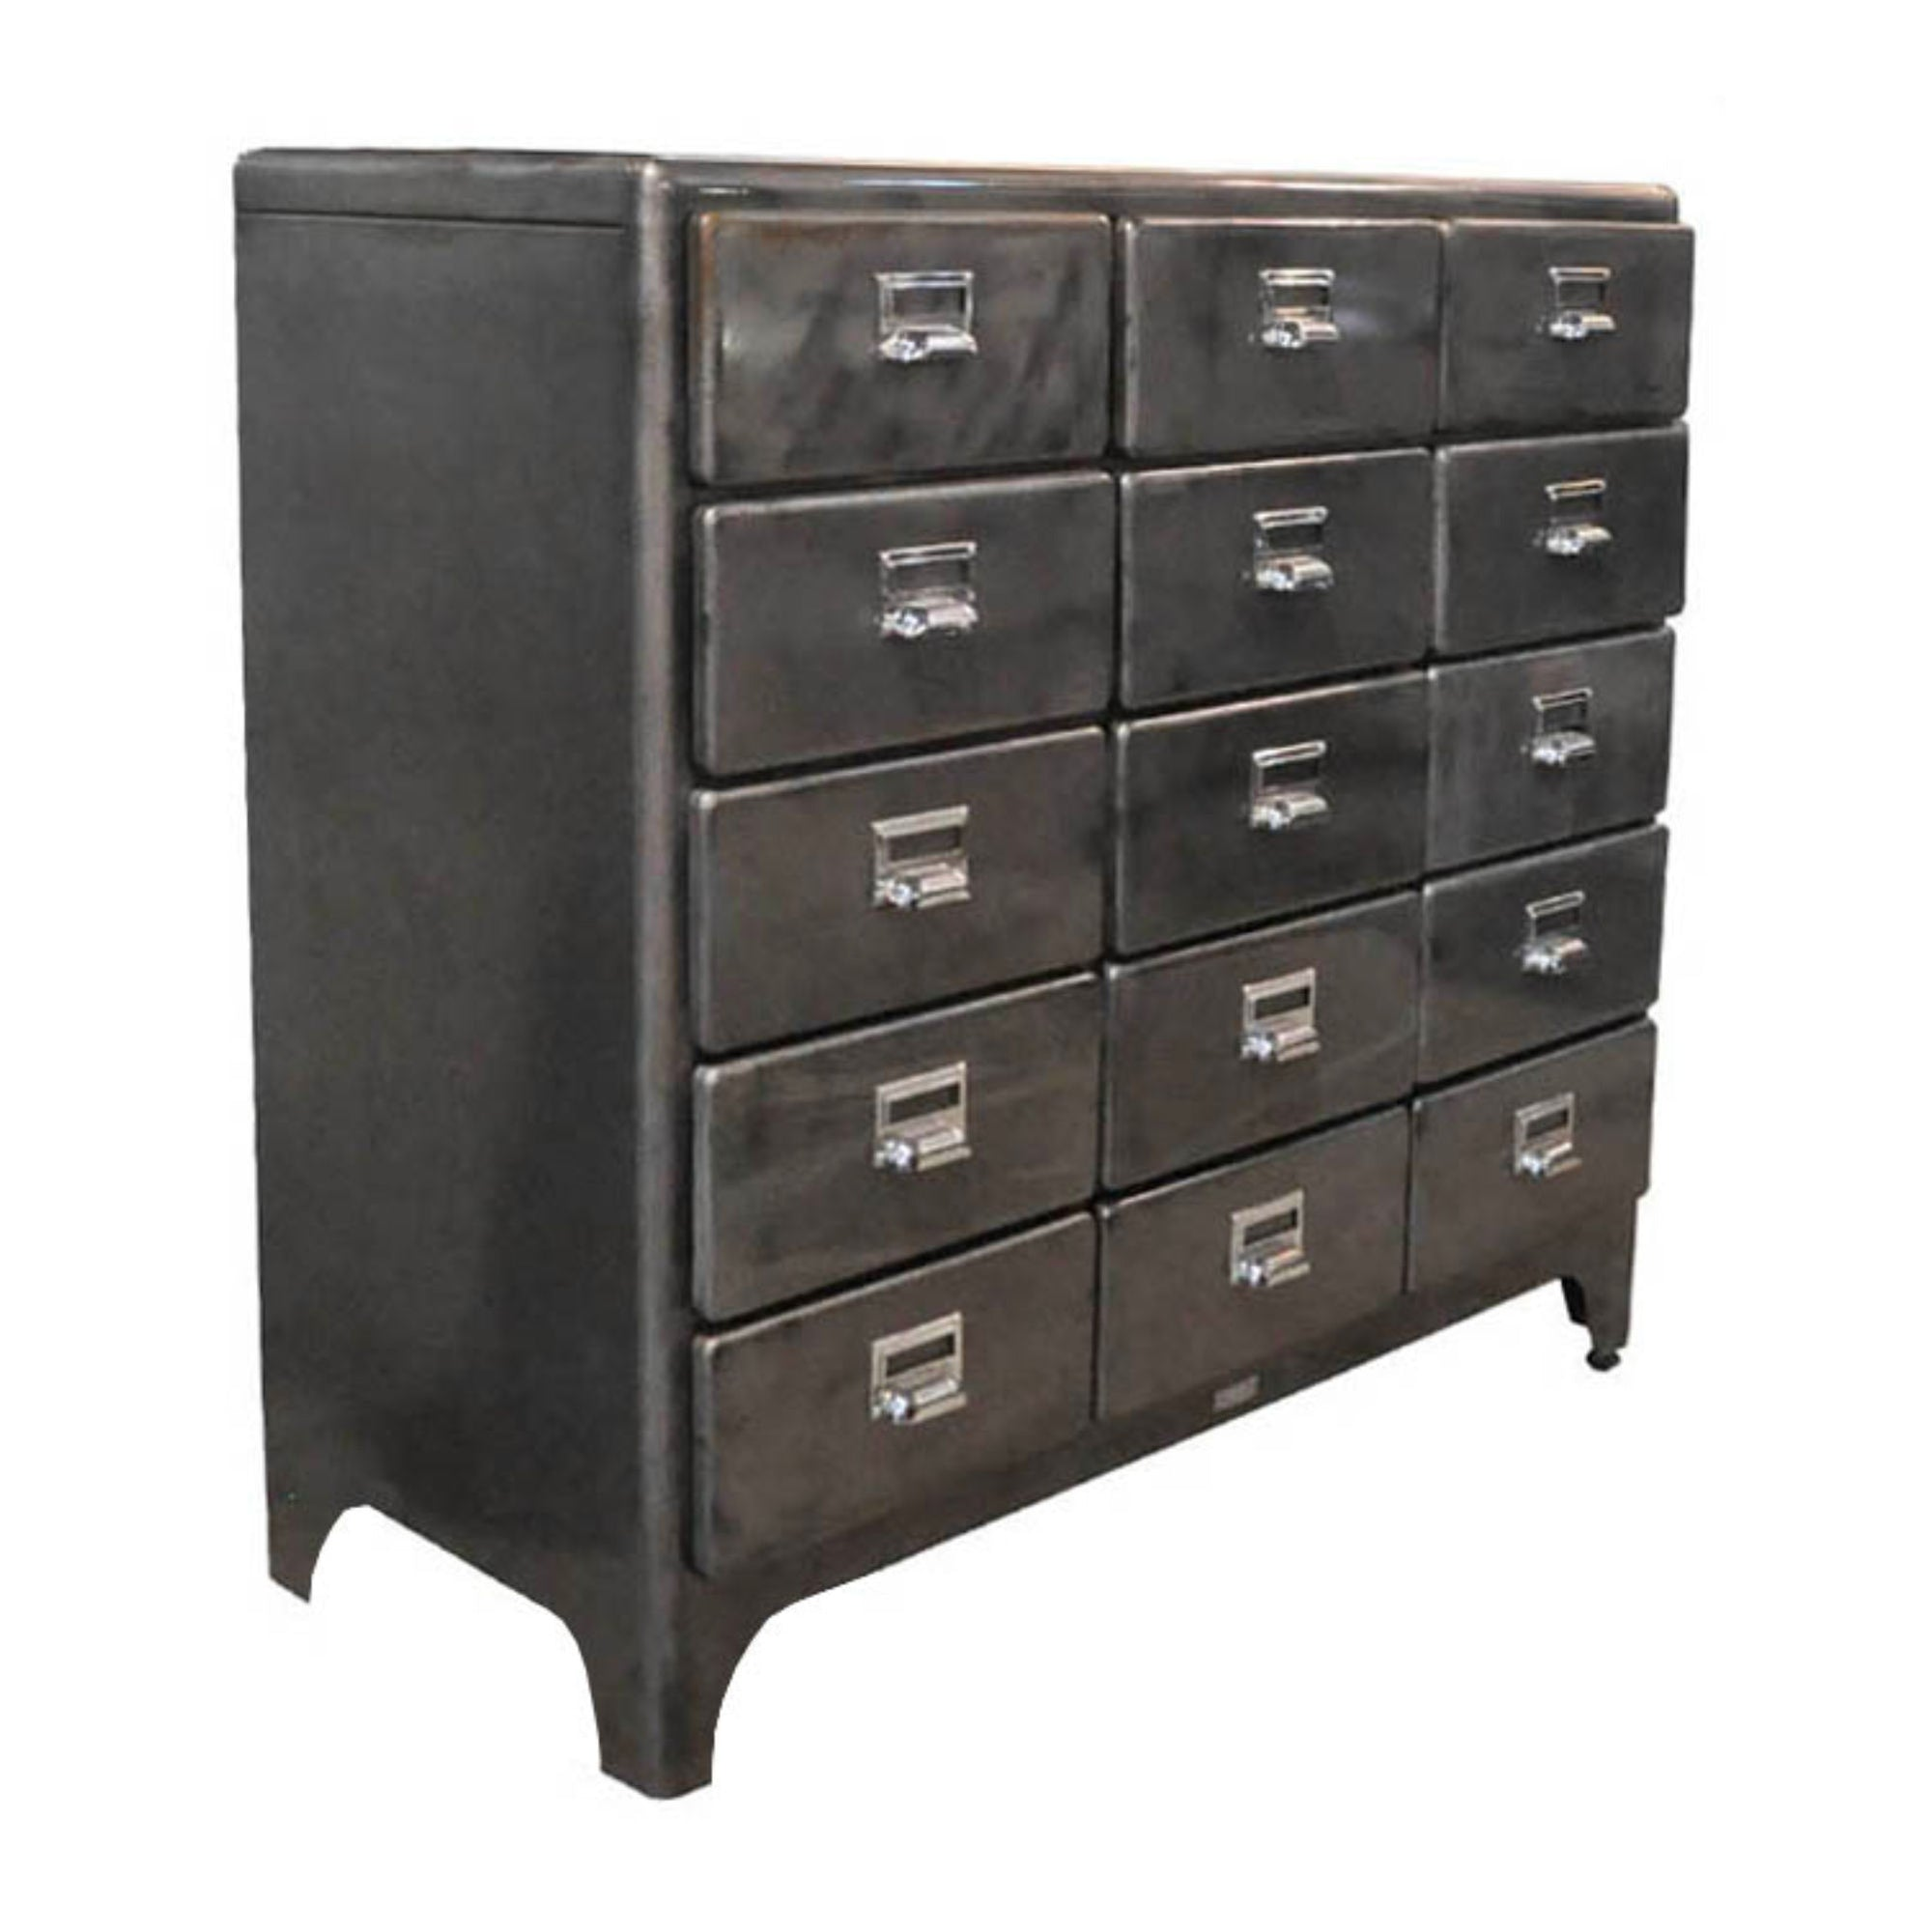 Dulton Cabinet 3 Column by 5 Drawers, raw